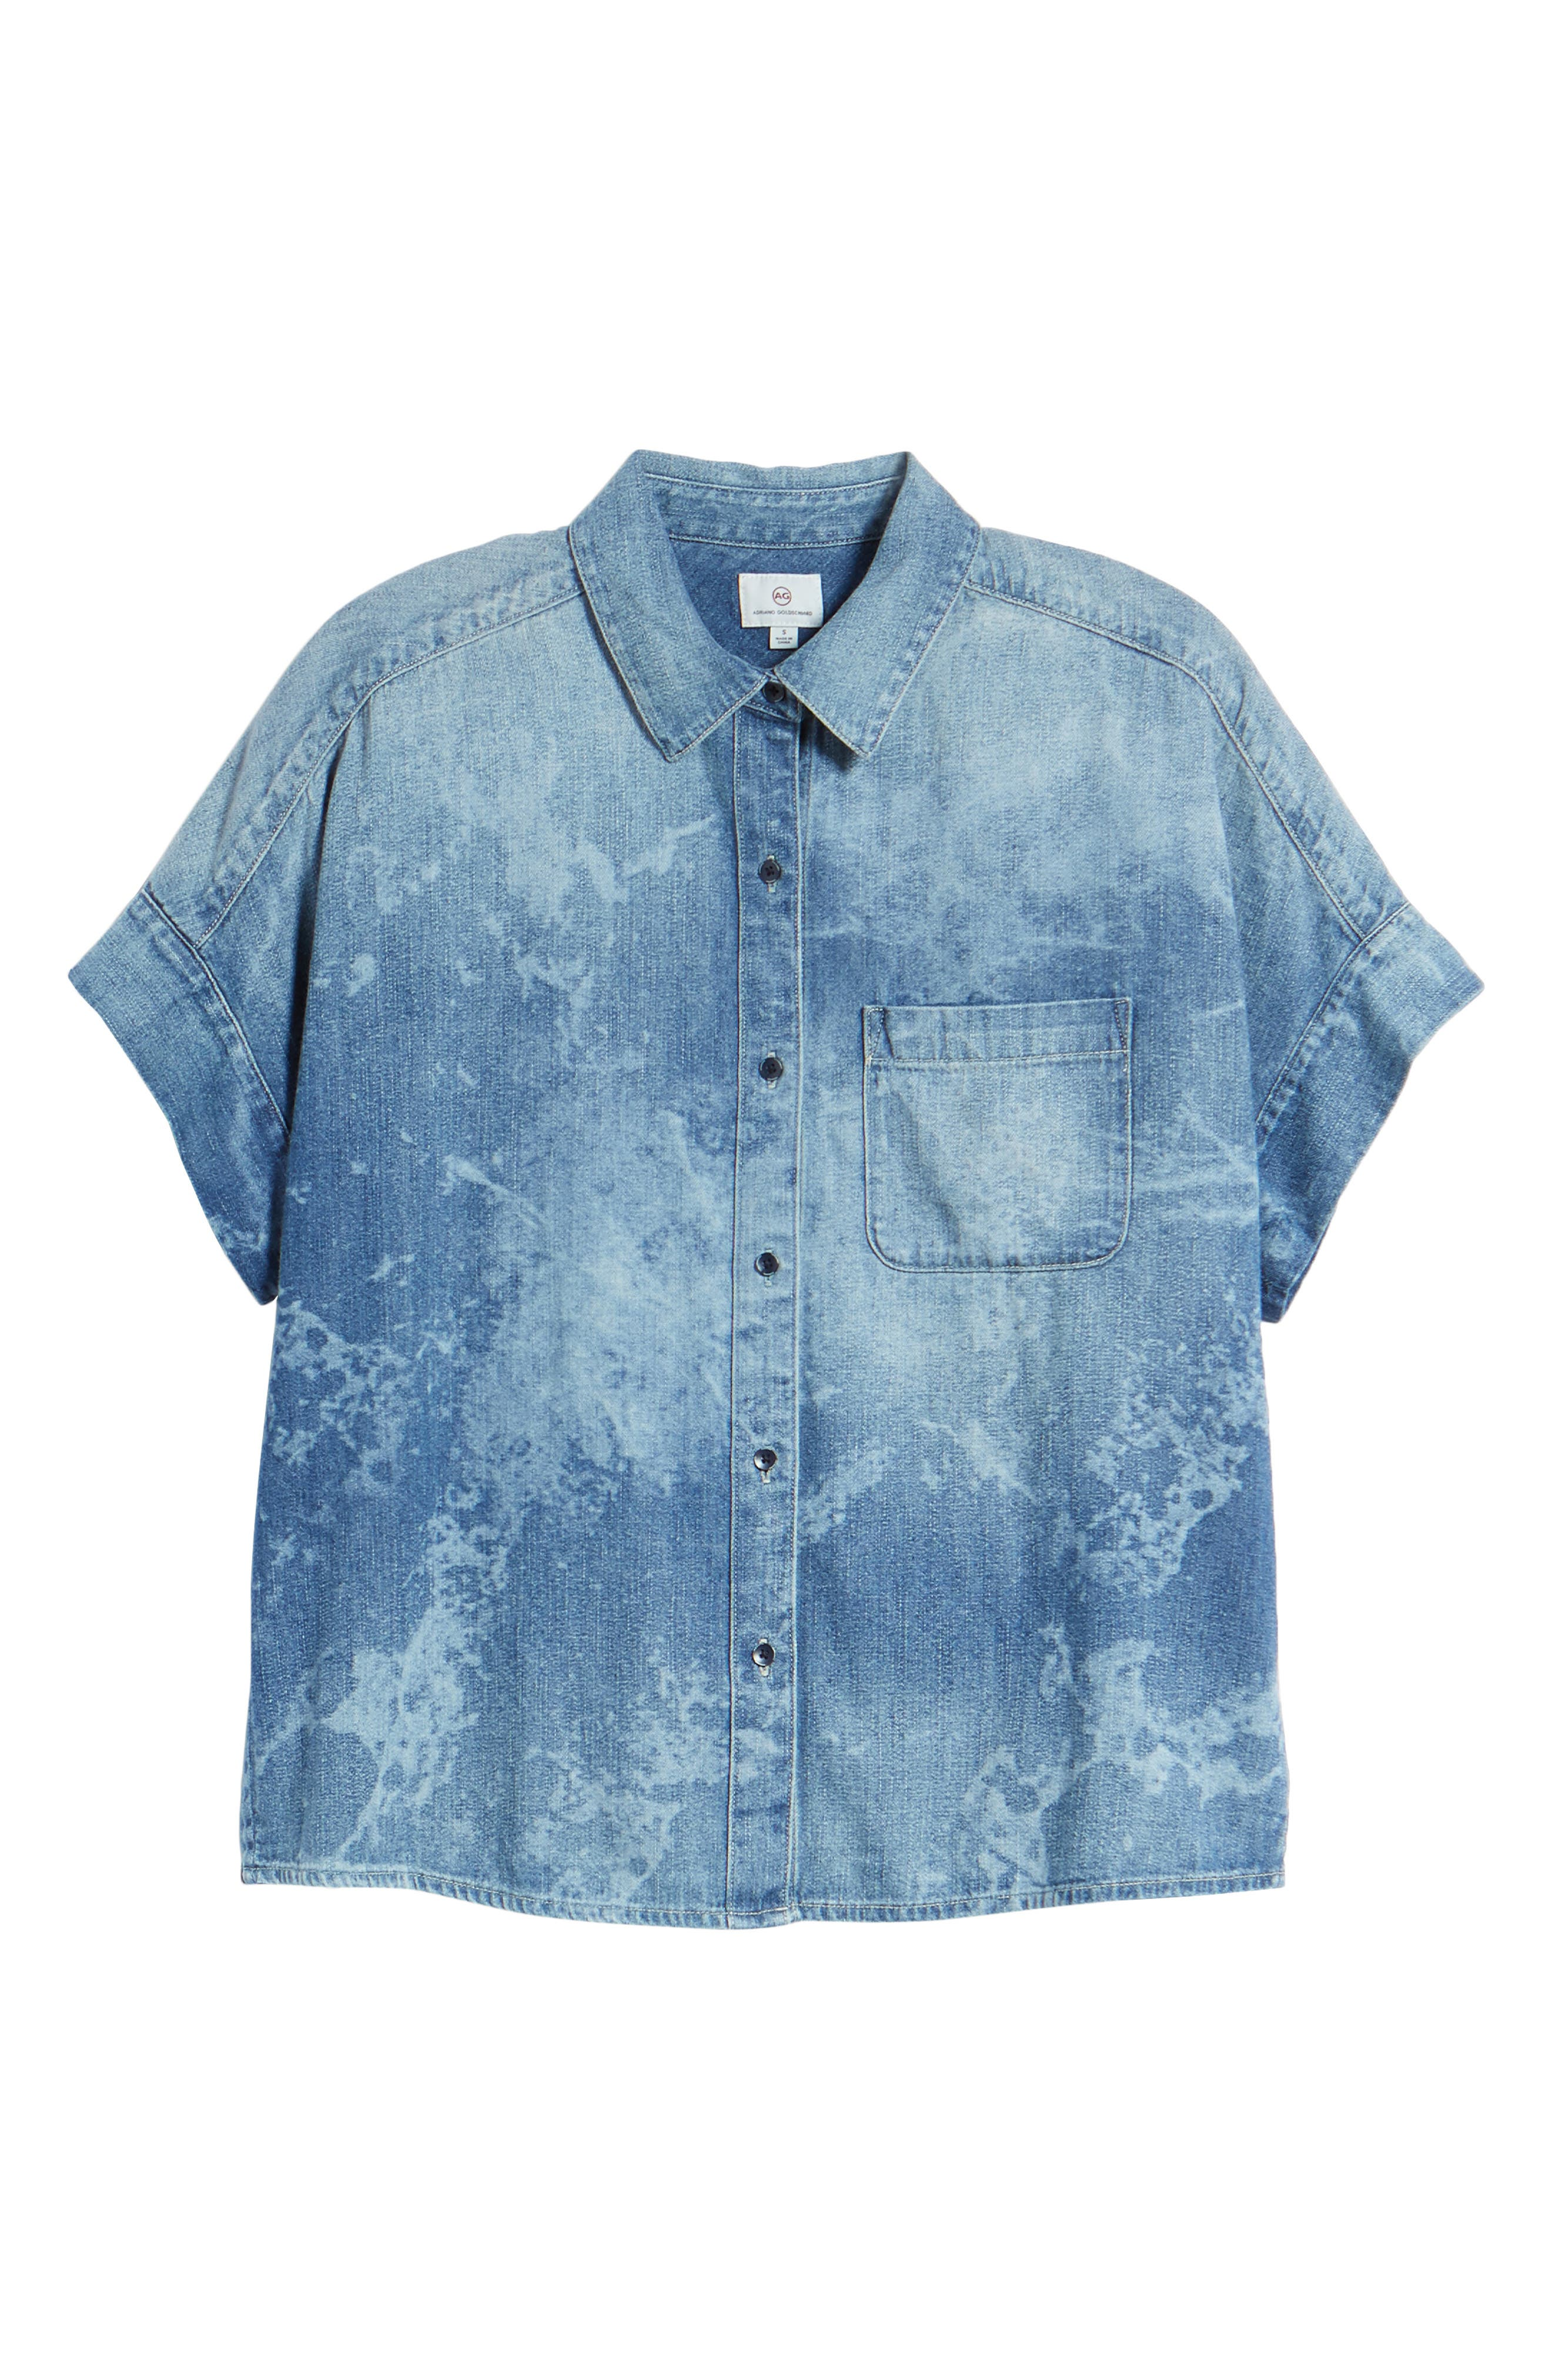 Hadley Denim Shirt,                             Alternate thumbnail 7, color,                             SUBLIME